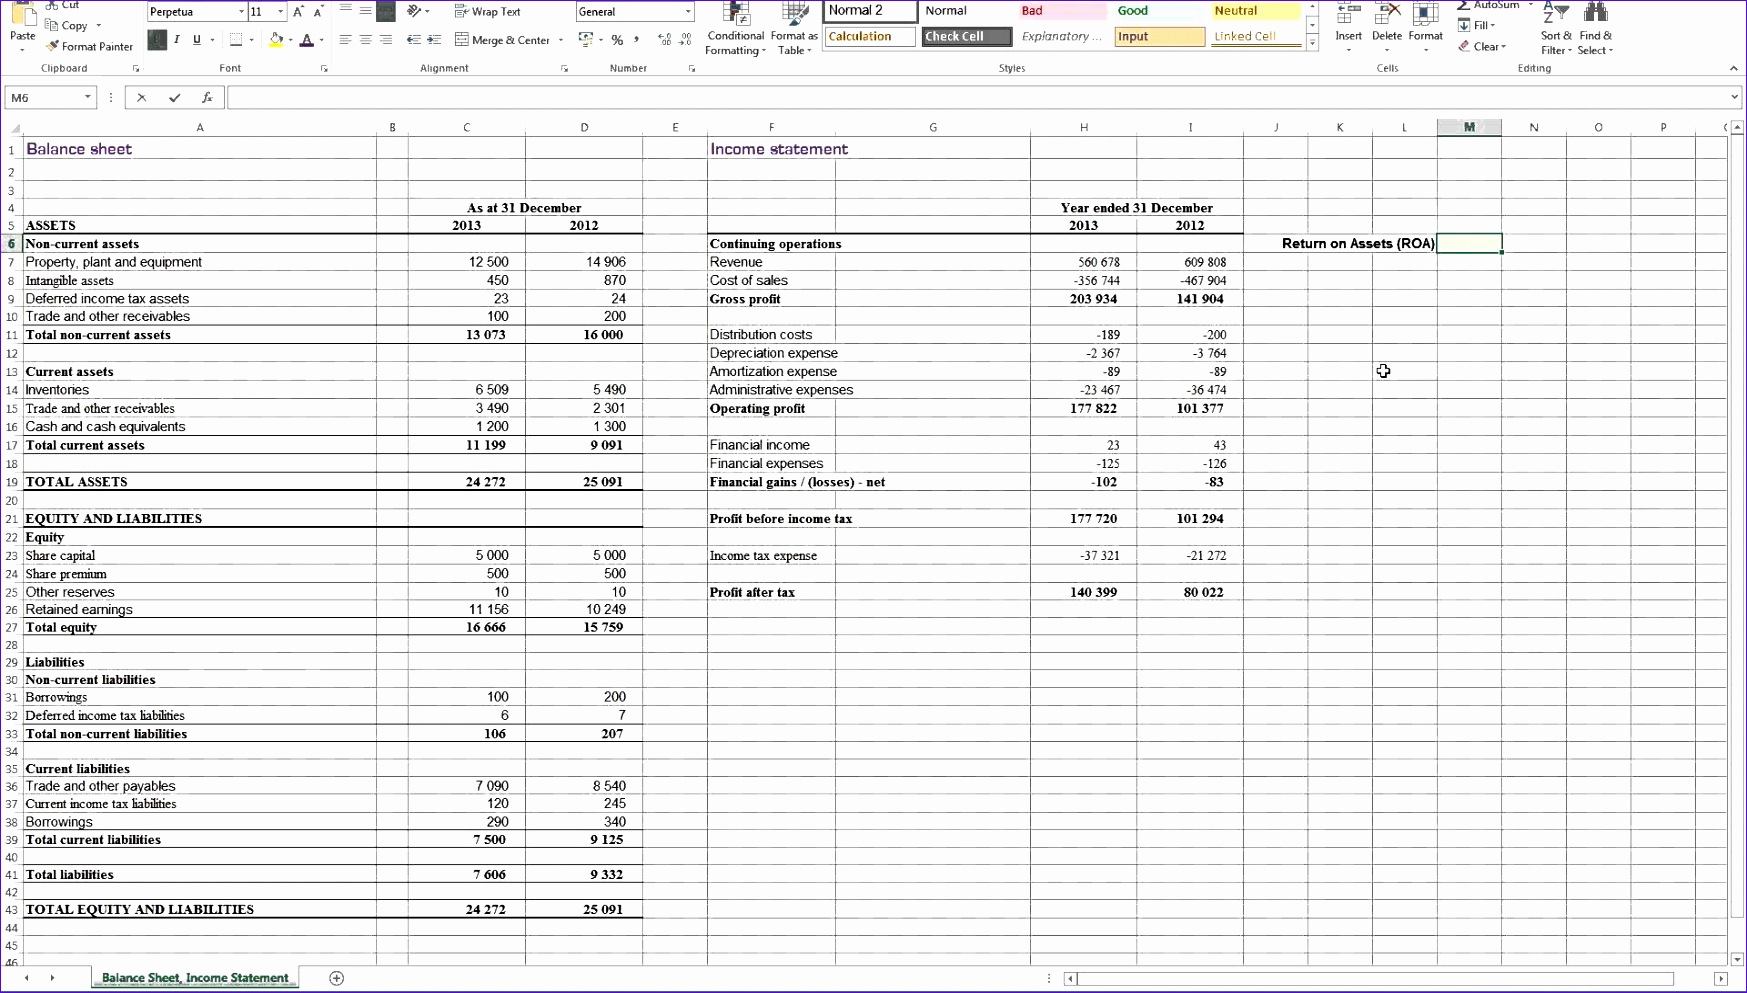 Excel Templates for Financial Statements C2kbm Beautiful Calculating Return On assets Roa In Excel